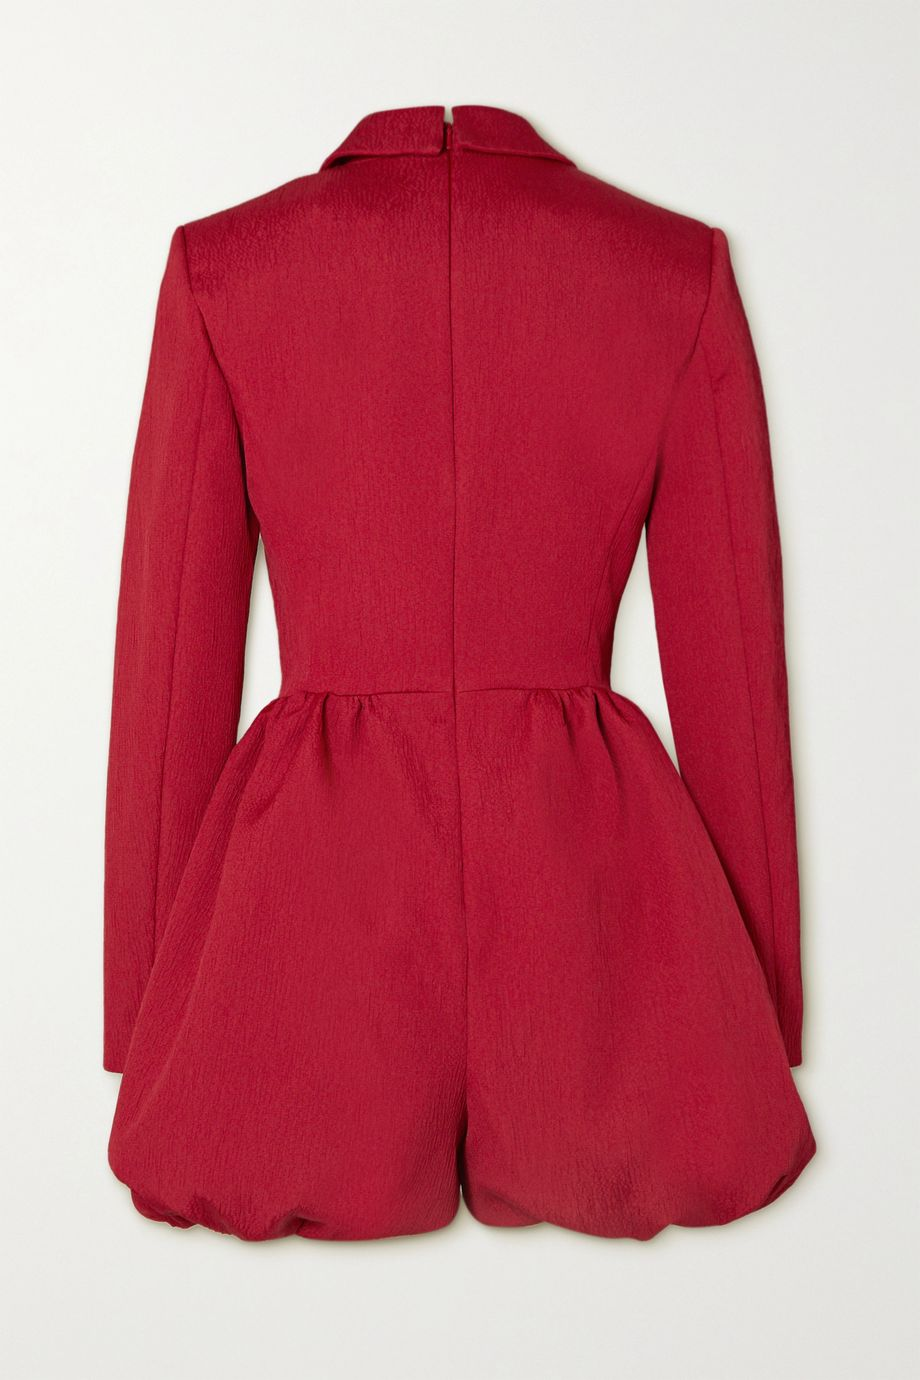 Emilia Wickstead Alton cloqué playsuit